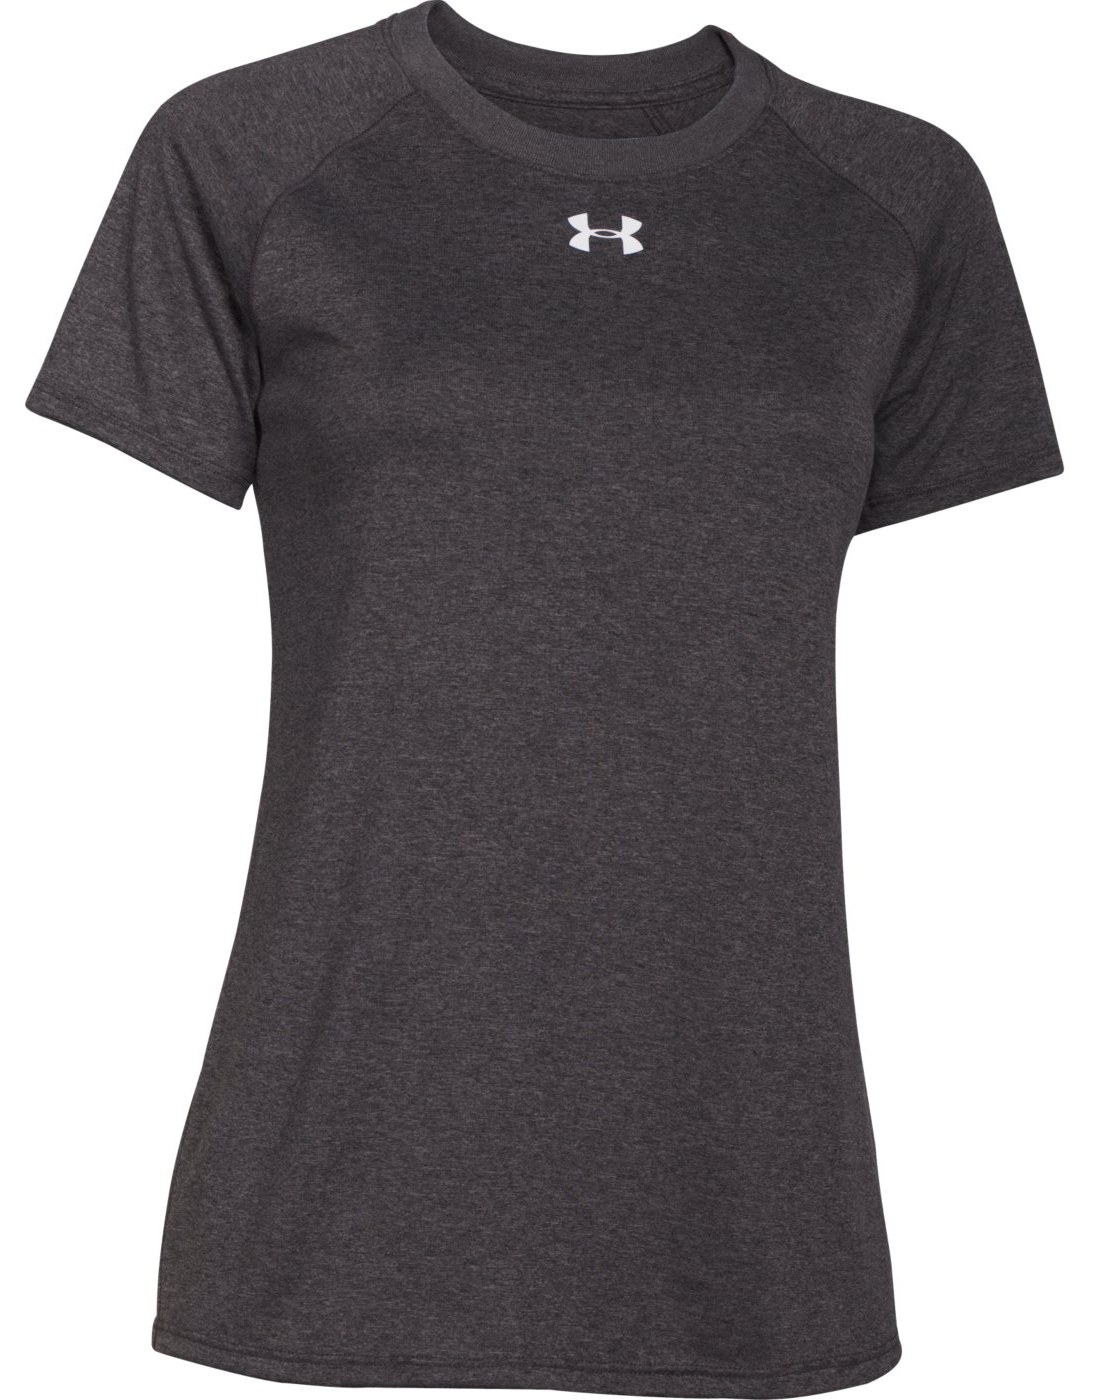 Under armour women 39 s locker t shirt for Under armour company shirts